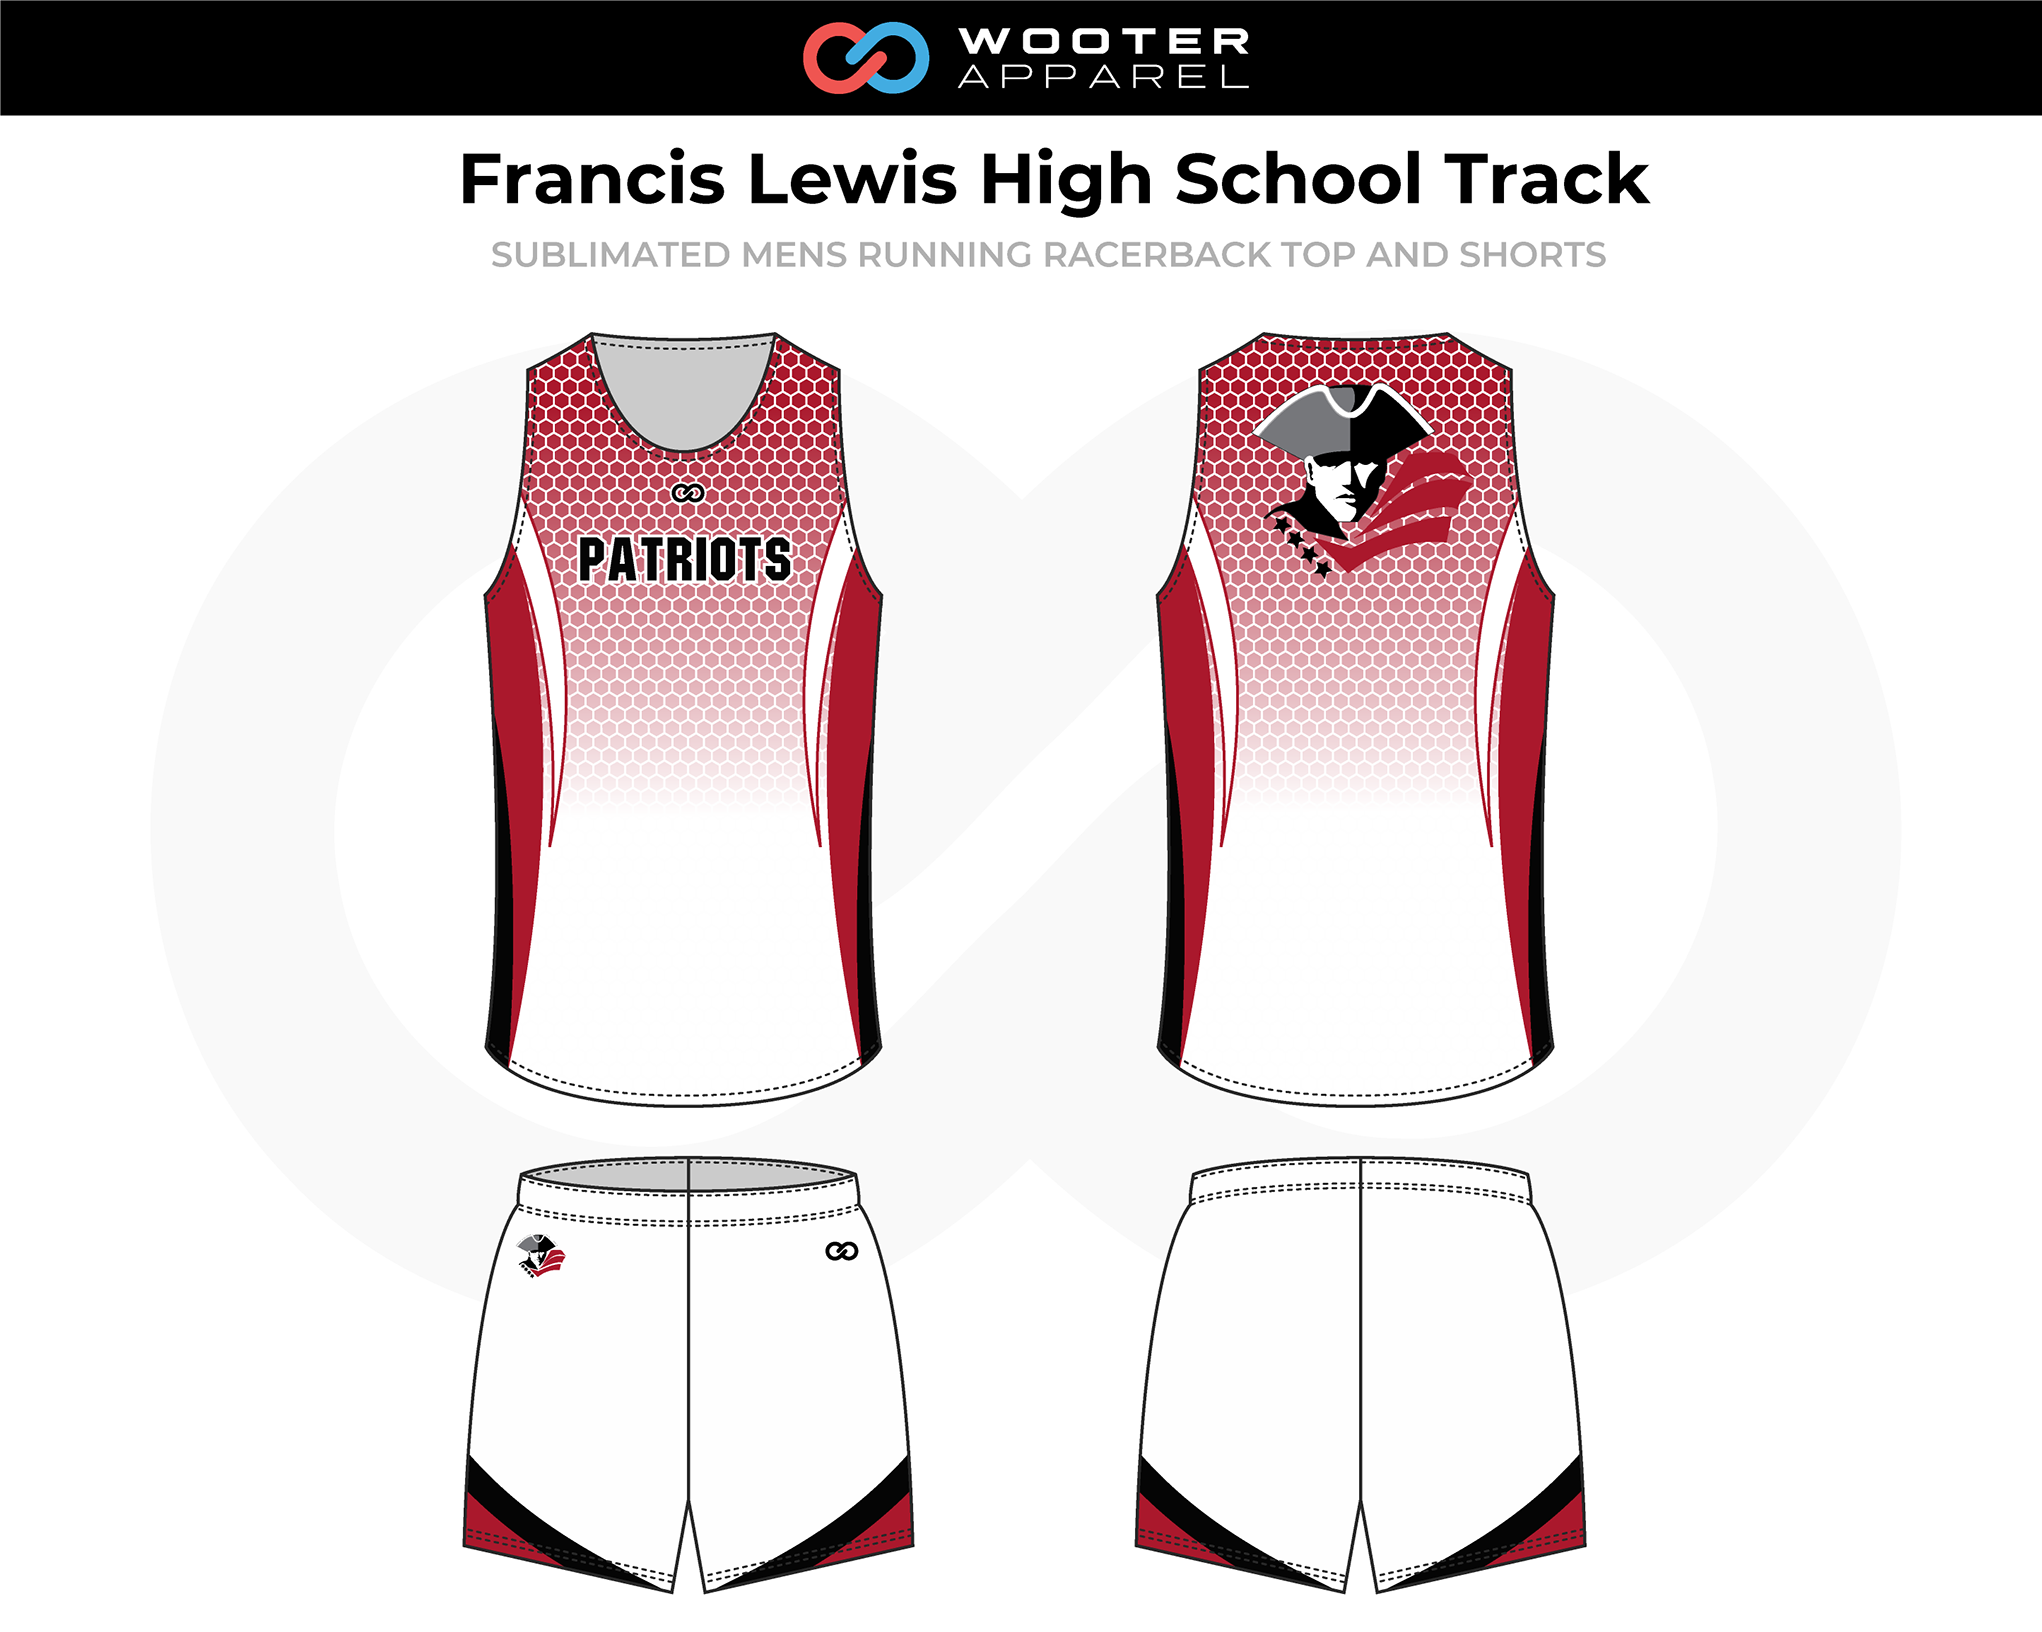 FRANCIS LEWIS HIGH SCHOOL Maroon White Black Men's Track Uniforms, Racerback Jerseys, and Shorts